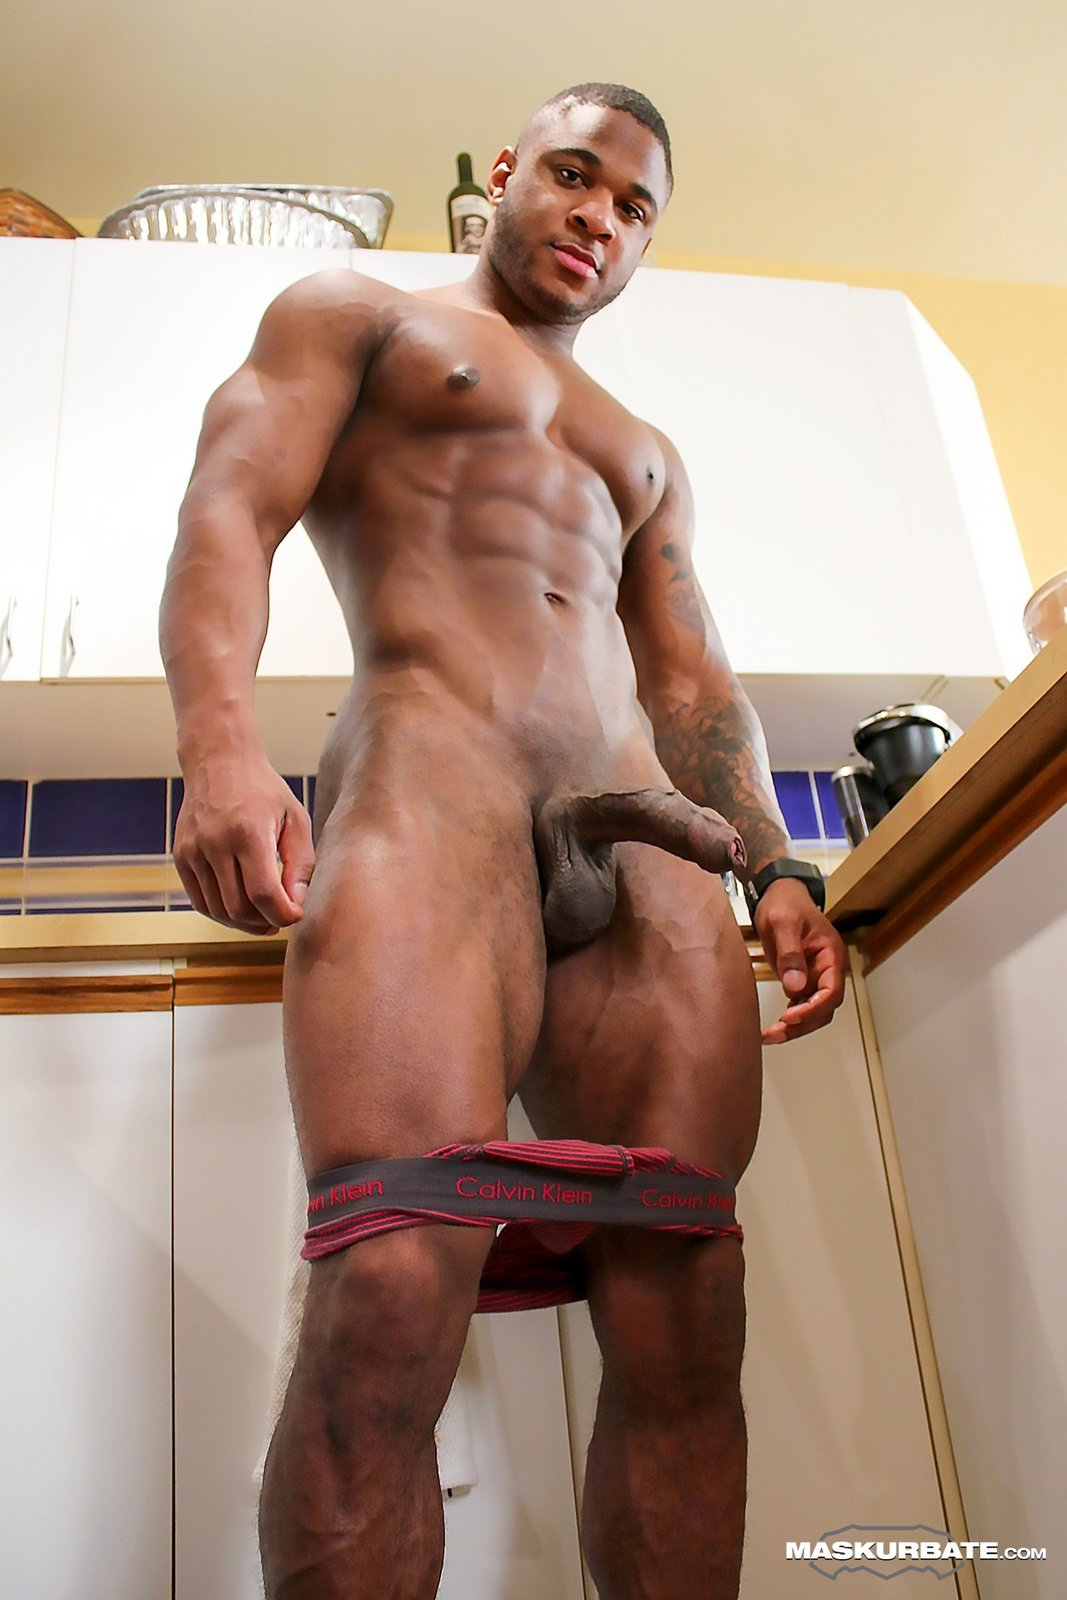 Hung Gay Teen Pics of big black gay dicks Horse Hung Gay Mens Sex Society.